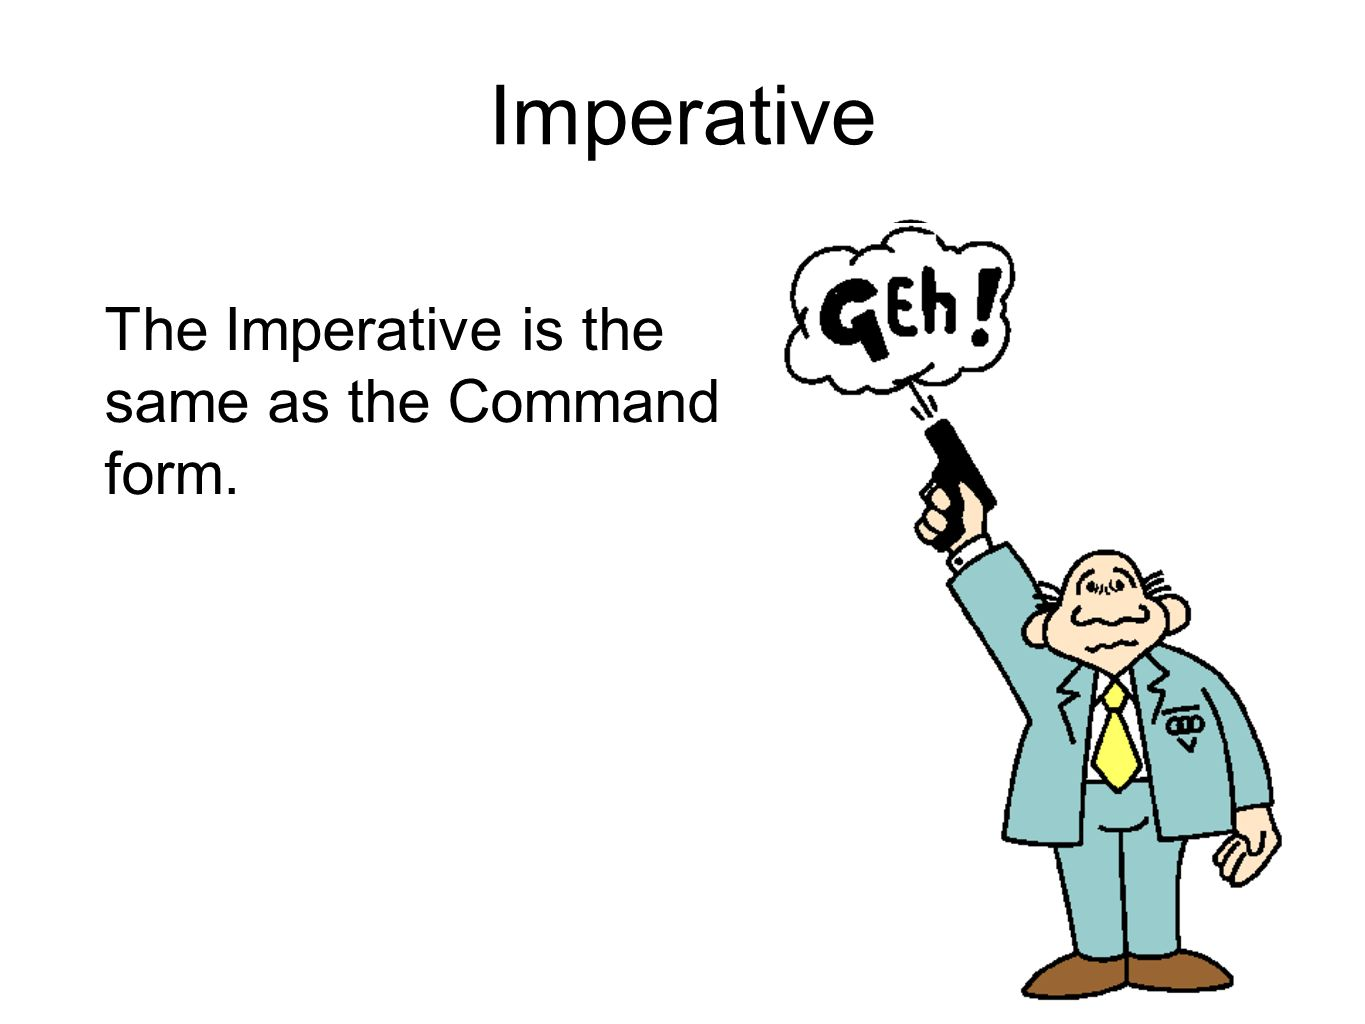 The ihr-form imperative looks just like the conjugated verb form, but the pronoun is not mentioned.